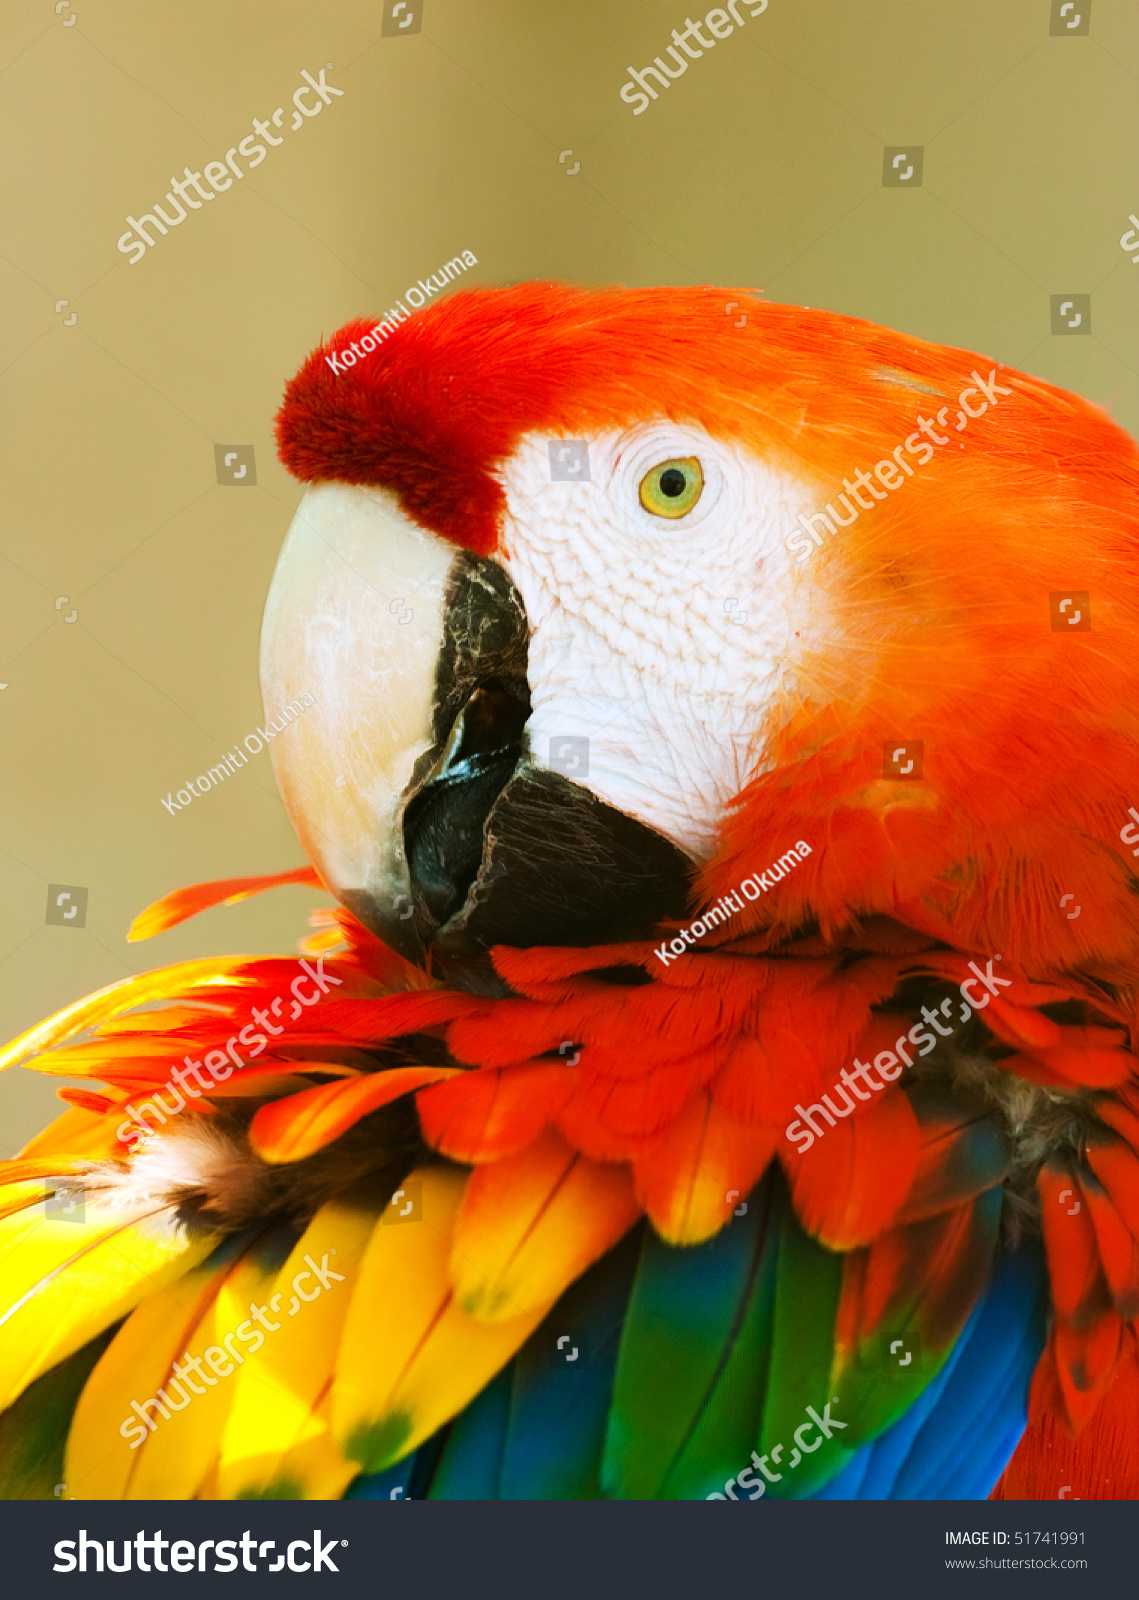 Macaw Colorful Plumage - Venezuela Stock Photo, Royalty Free Image ...